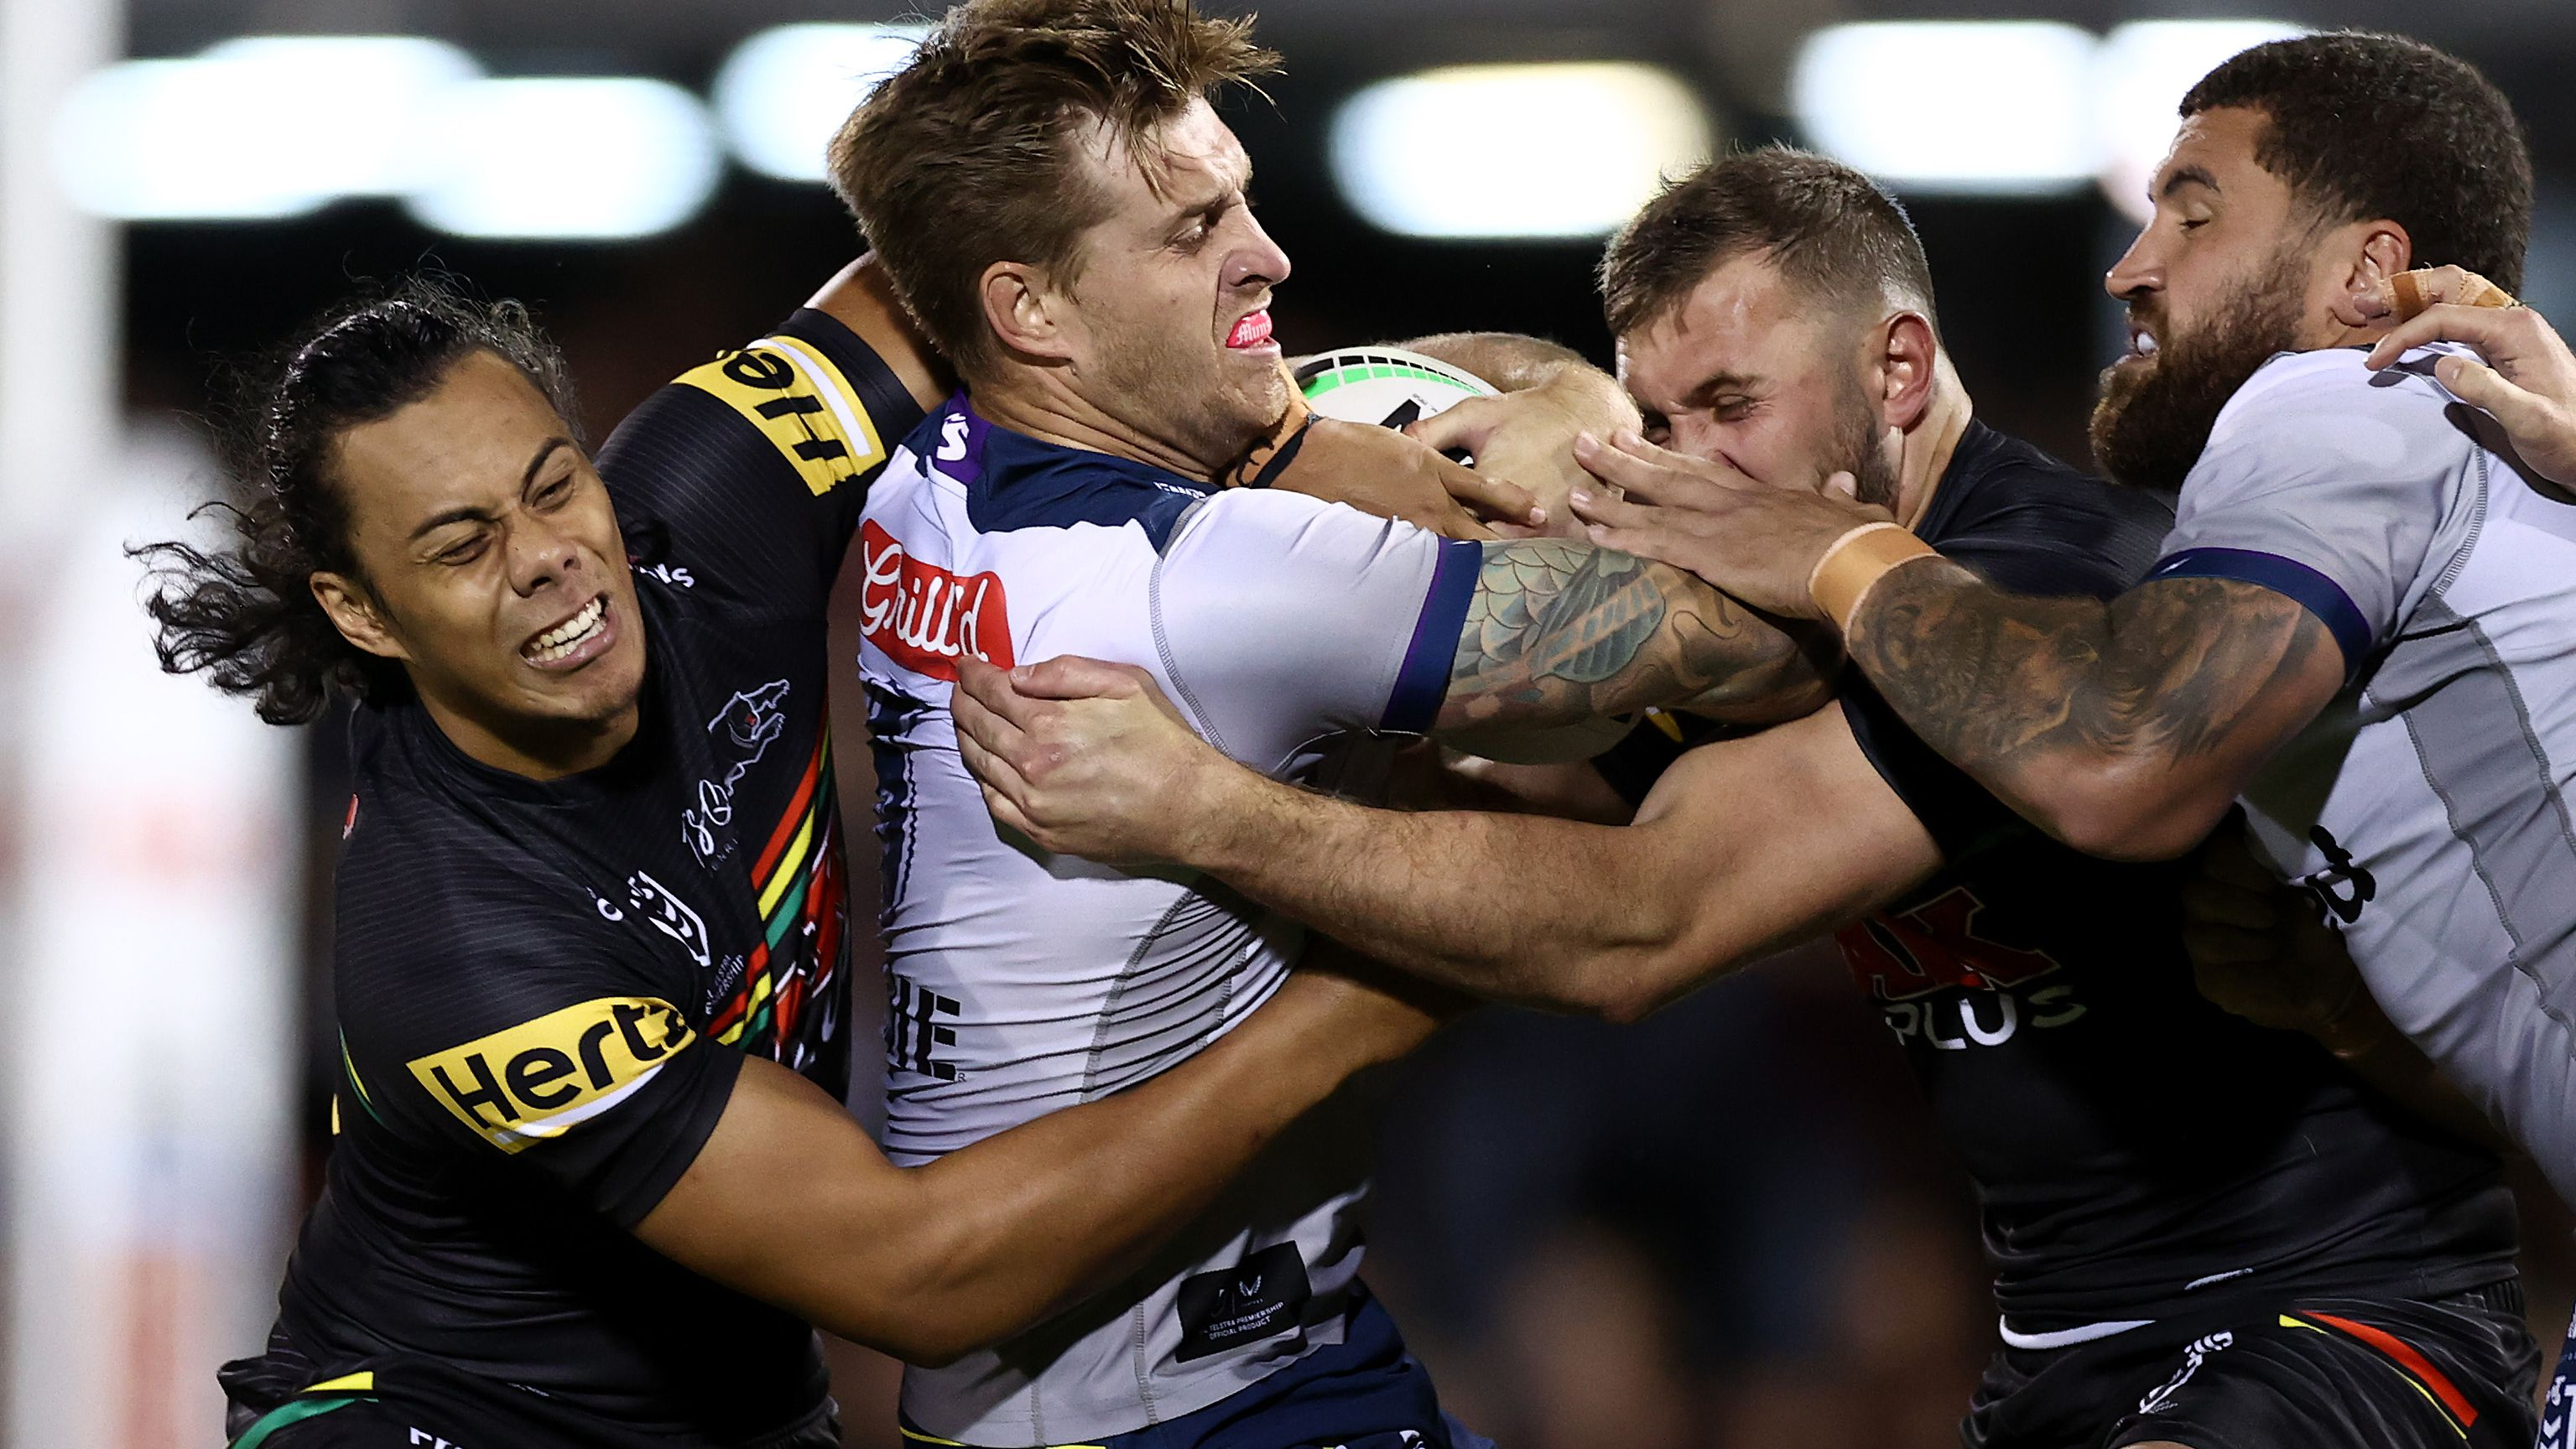 The Penrith Panthers and the Melbourne Storm clash earlier in the season.